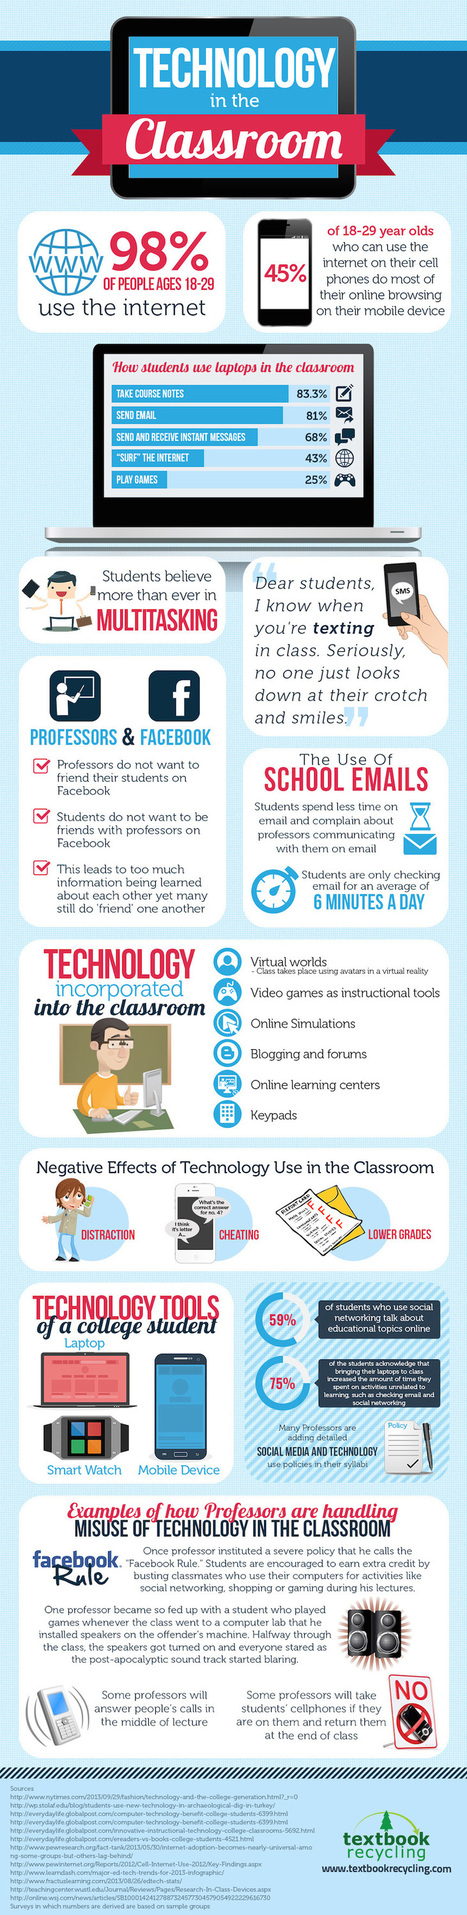 Educational Technology In The College Classroom Infographic | digital marketing strategy | Scoop.it